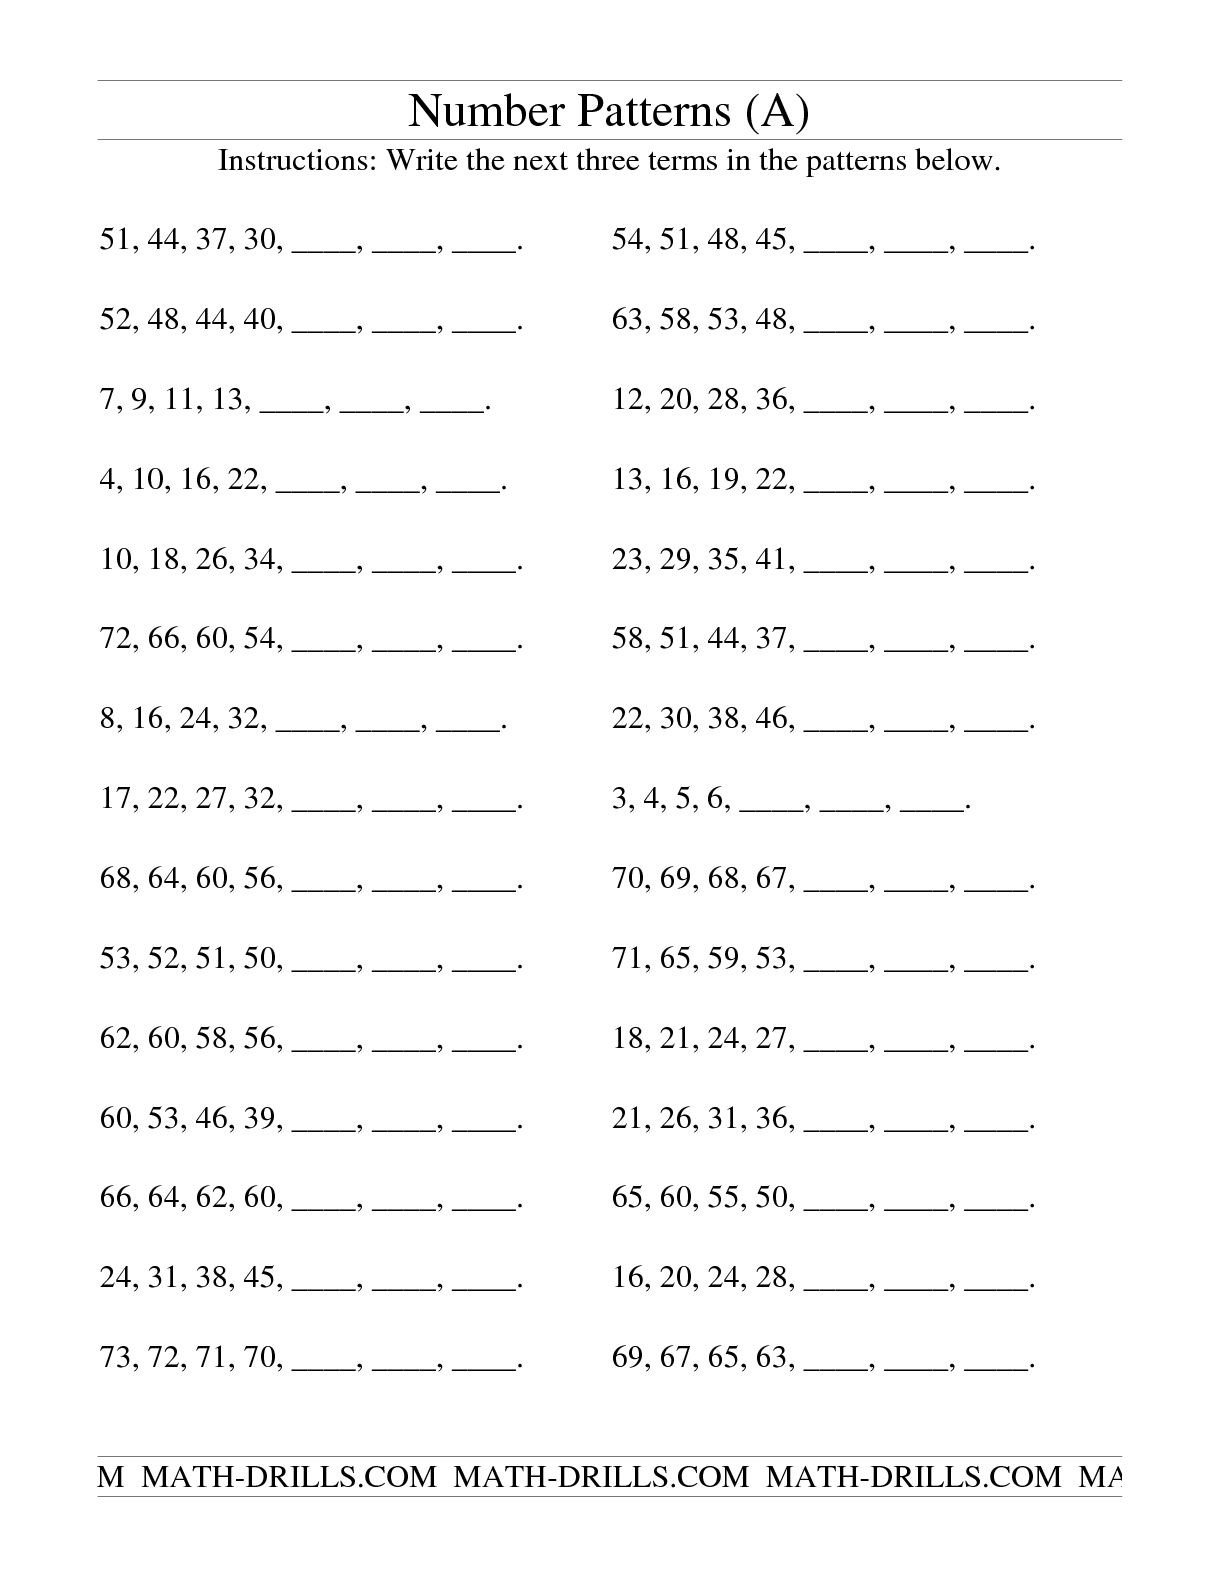 Repeated Pattern Worksheets 2nd Grade Math Worksheets Patterns